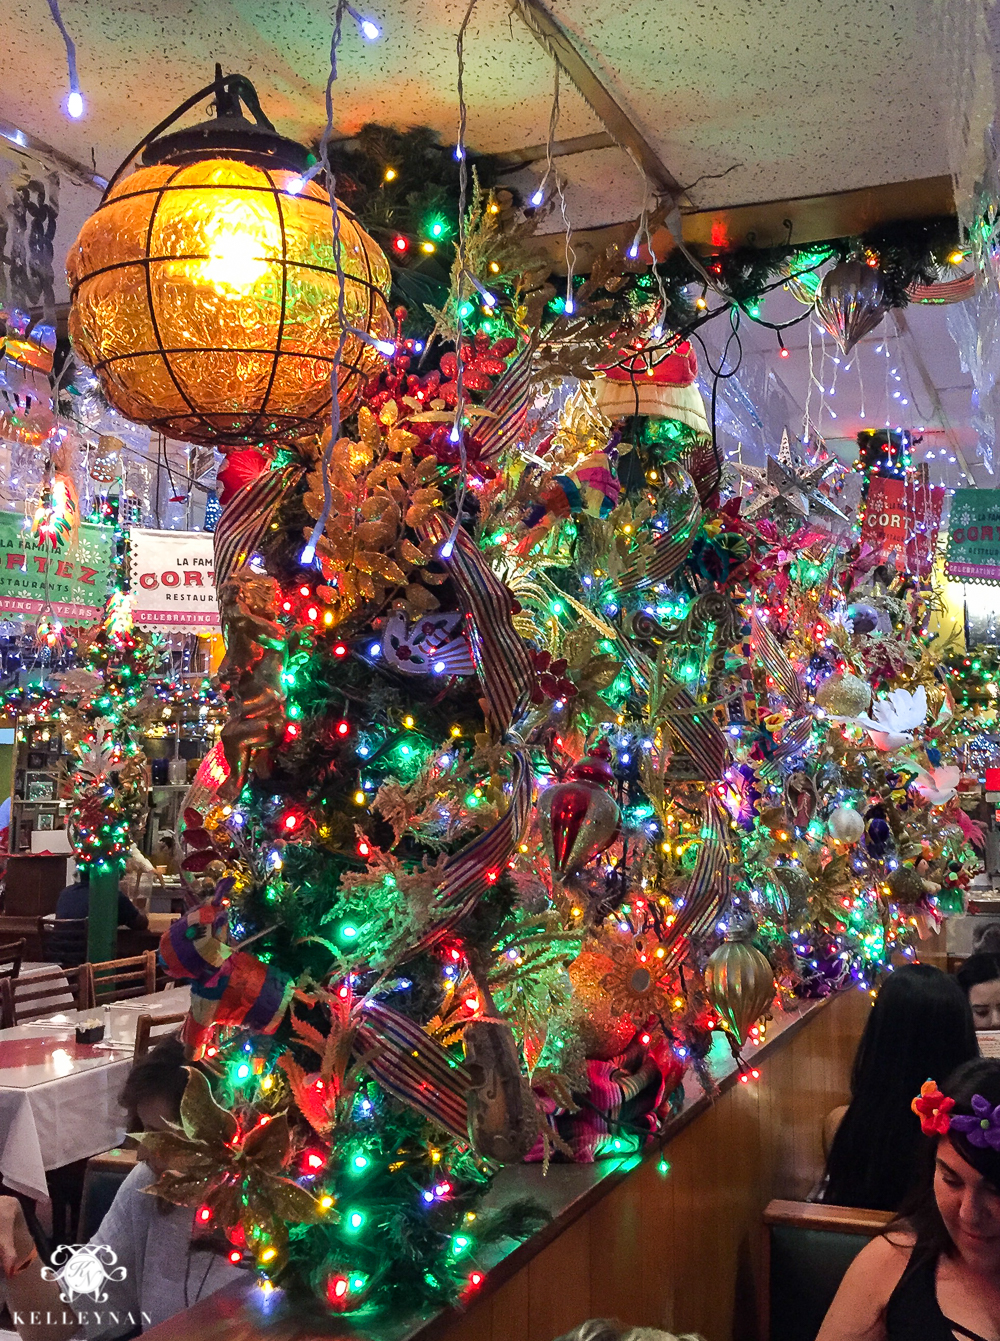 Texas Trip and San Antonio Fiesta Week-mi tierra decorations